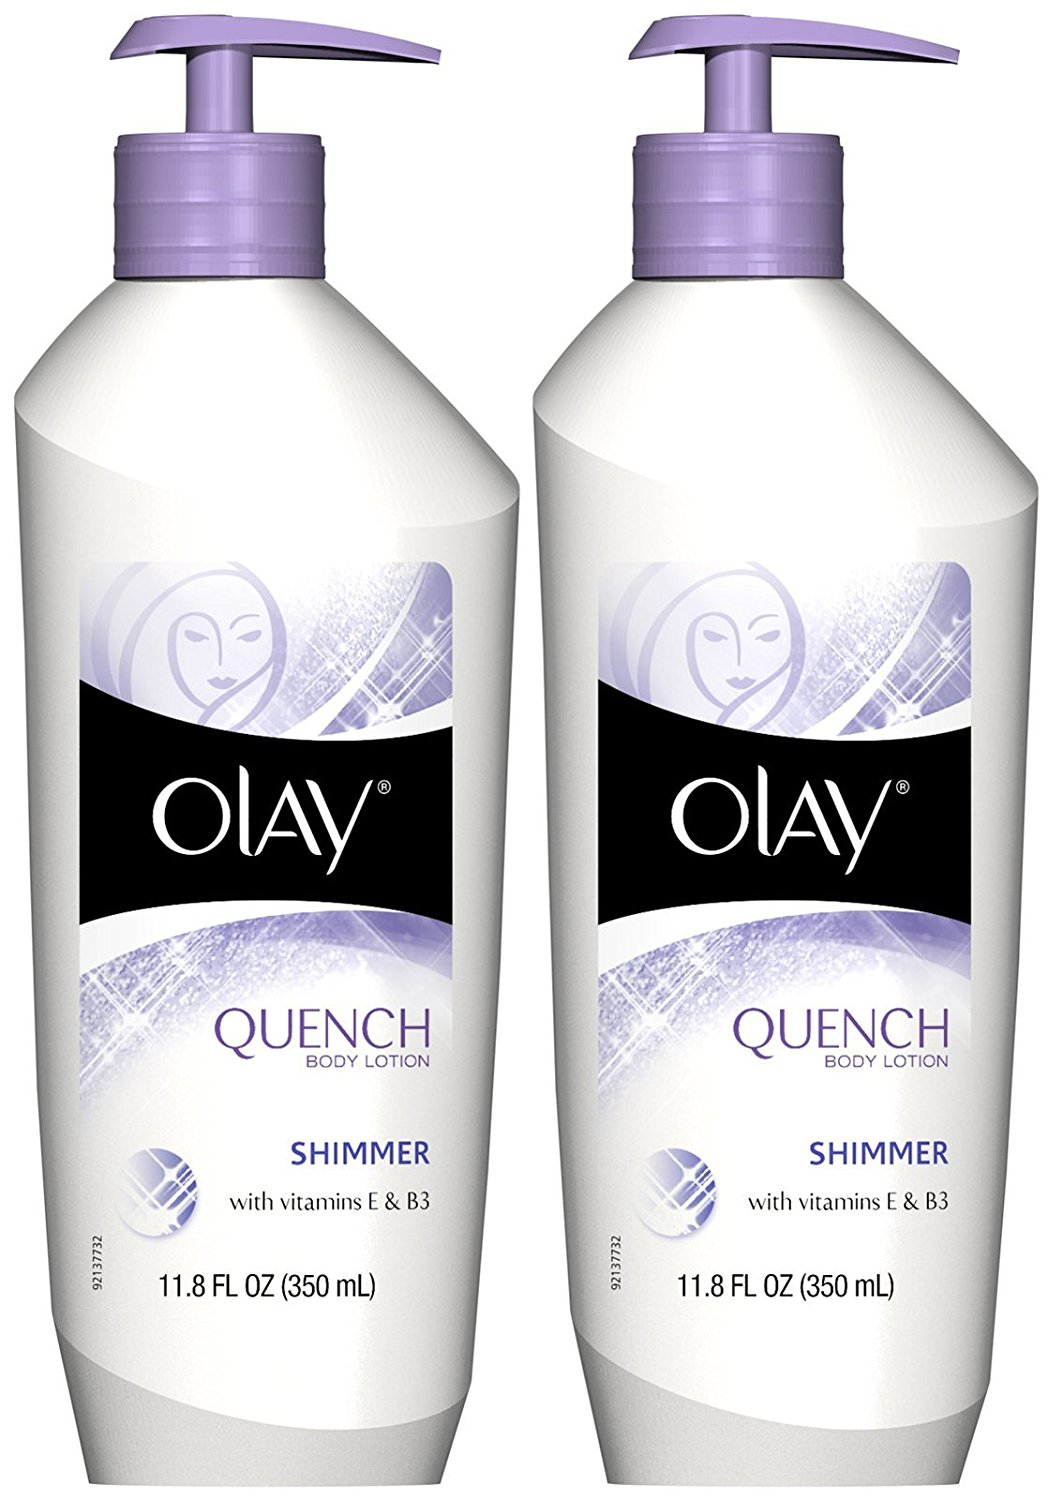 Olay Quench Daily Lotion Plus Shimmer - 11.8 oz - 2 pk